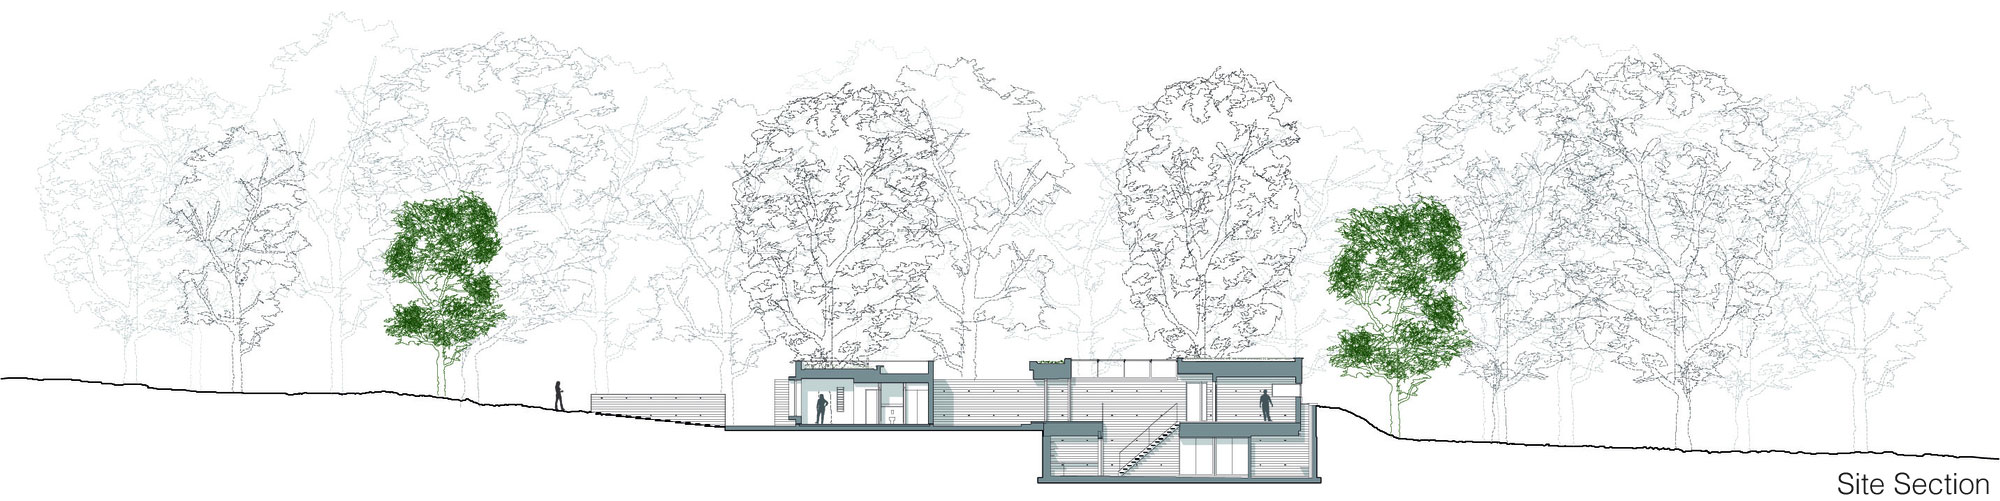 Site Section, Contemporary Home in the New Forest National Park, England